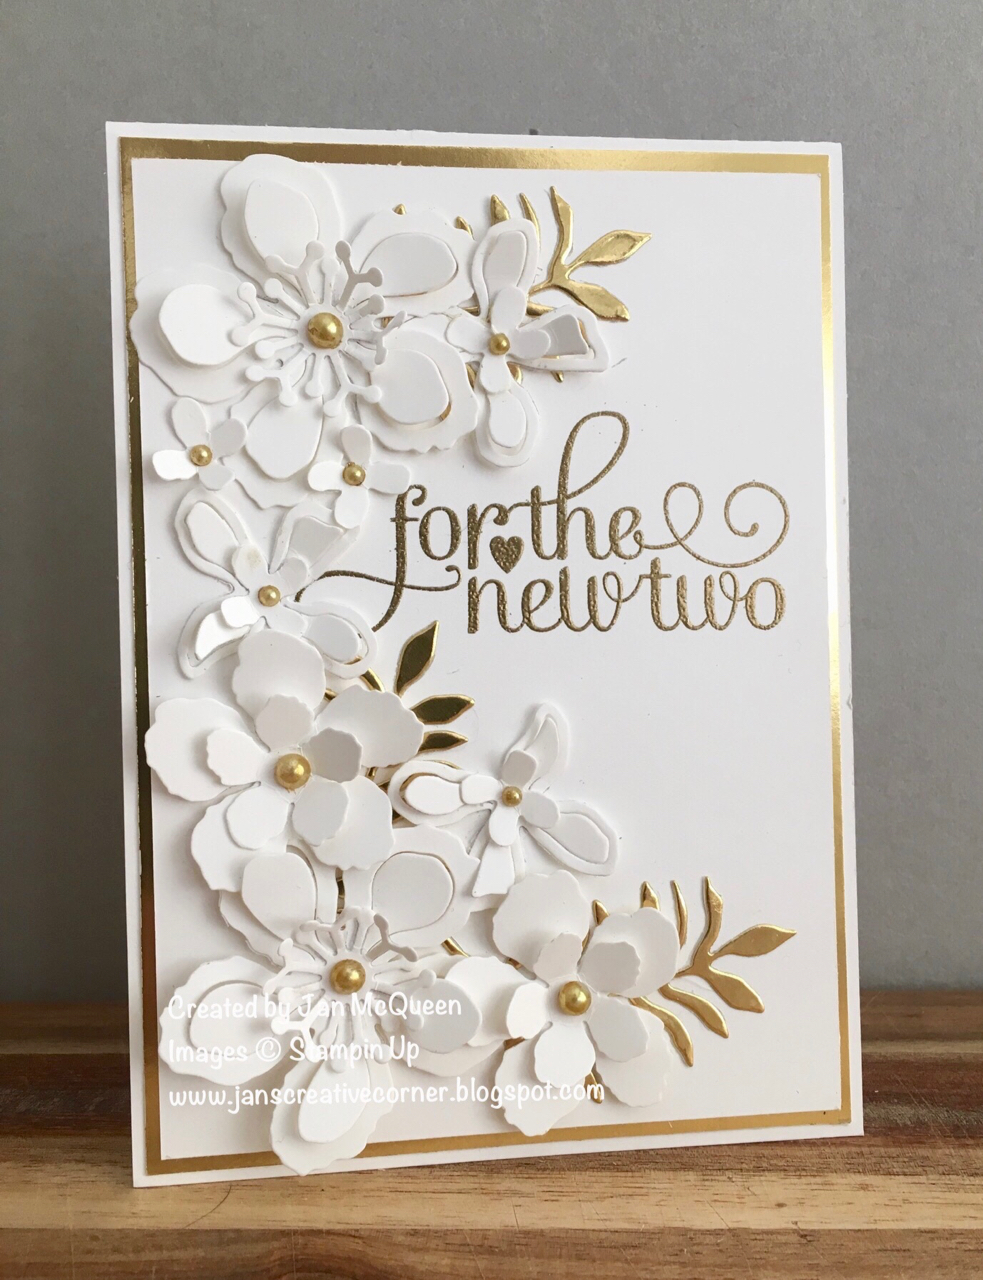 Best Wedding Gift Ideas Australia : Wedding card using Stampin Ups For the New Two and Botanical Builder ...